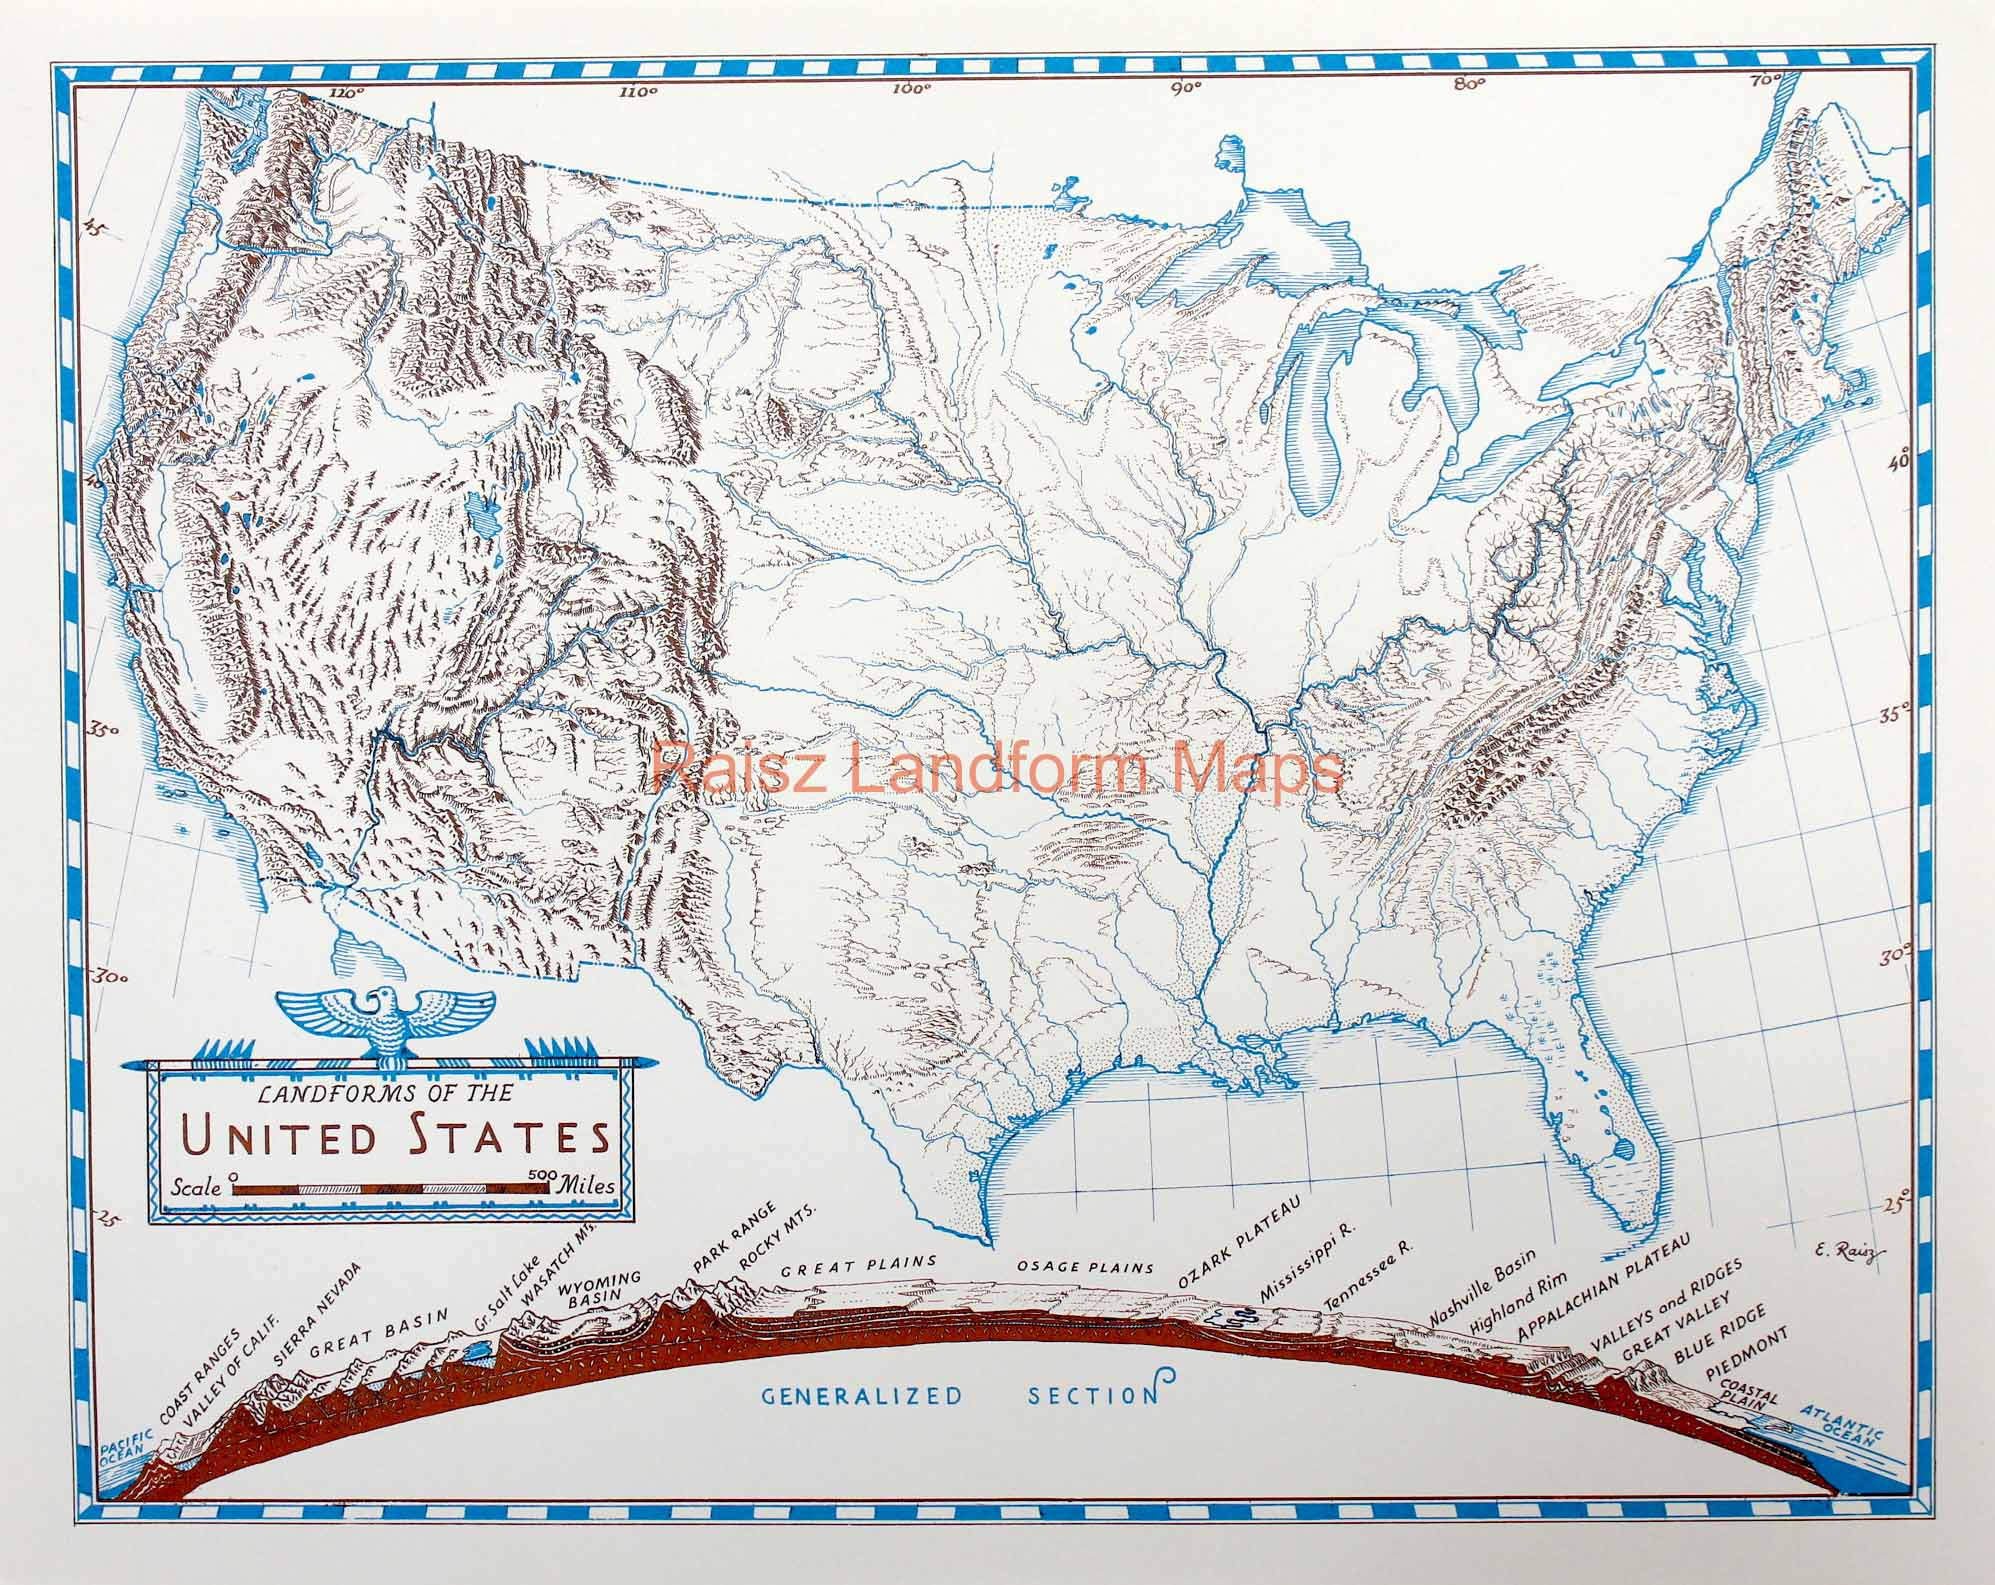 Landforms Of The United States With A Generalized Section Raisz - Landforms of the united states